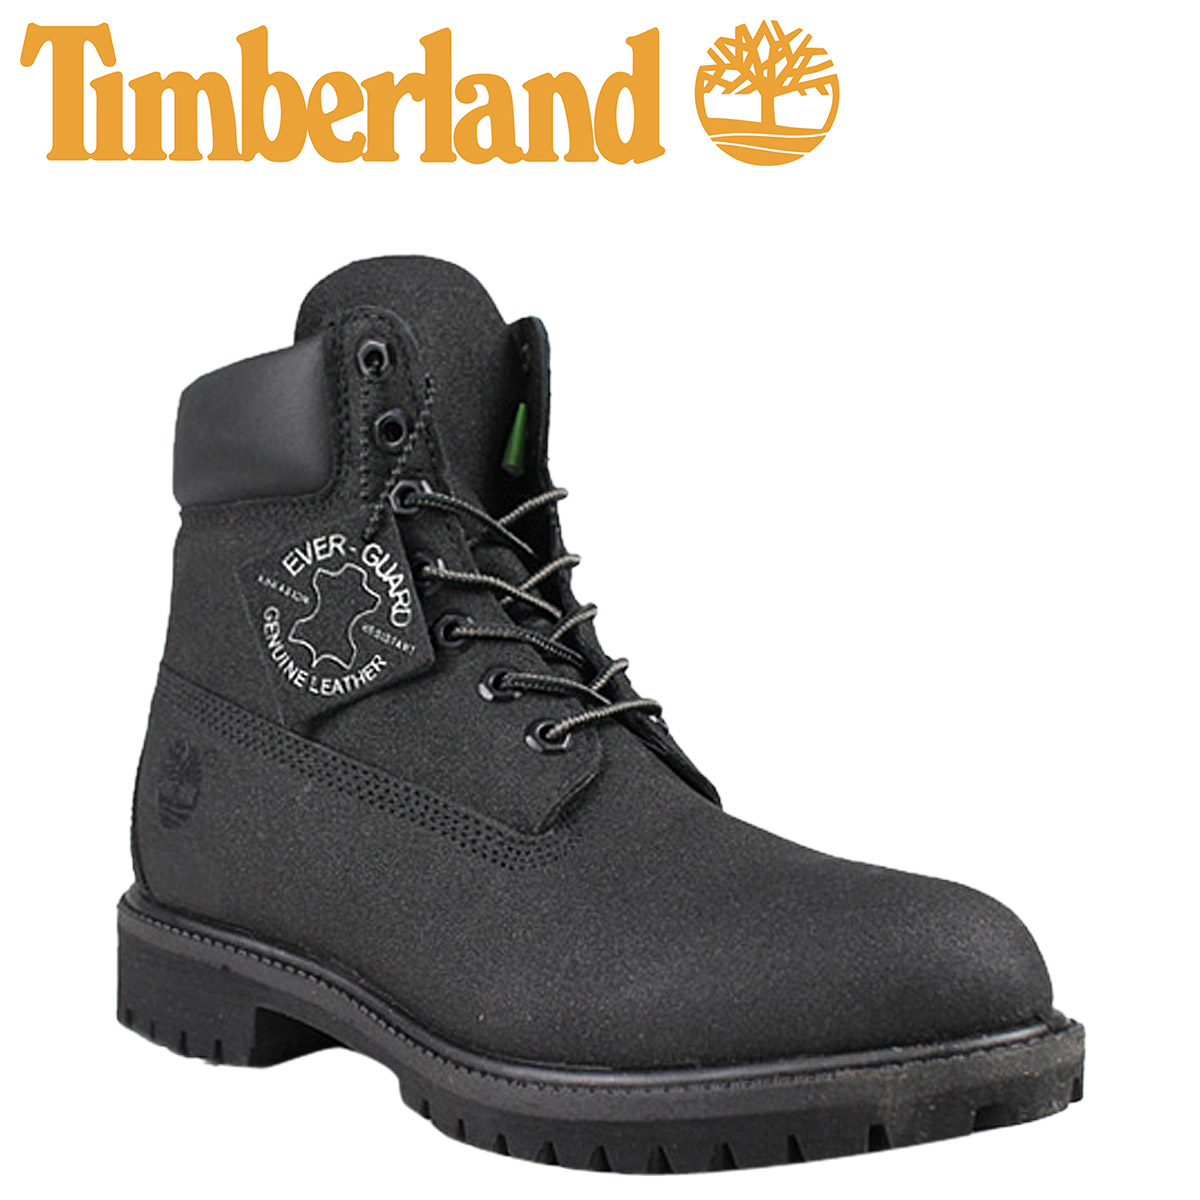 01d1b4cbef9 6 inches of Timberland Timberland premium boots black black 34553 6inch  Scuff Proof Premium Boot waterproof leather men